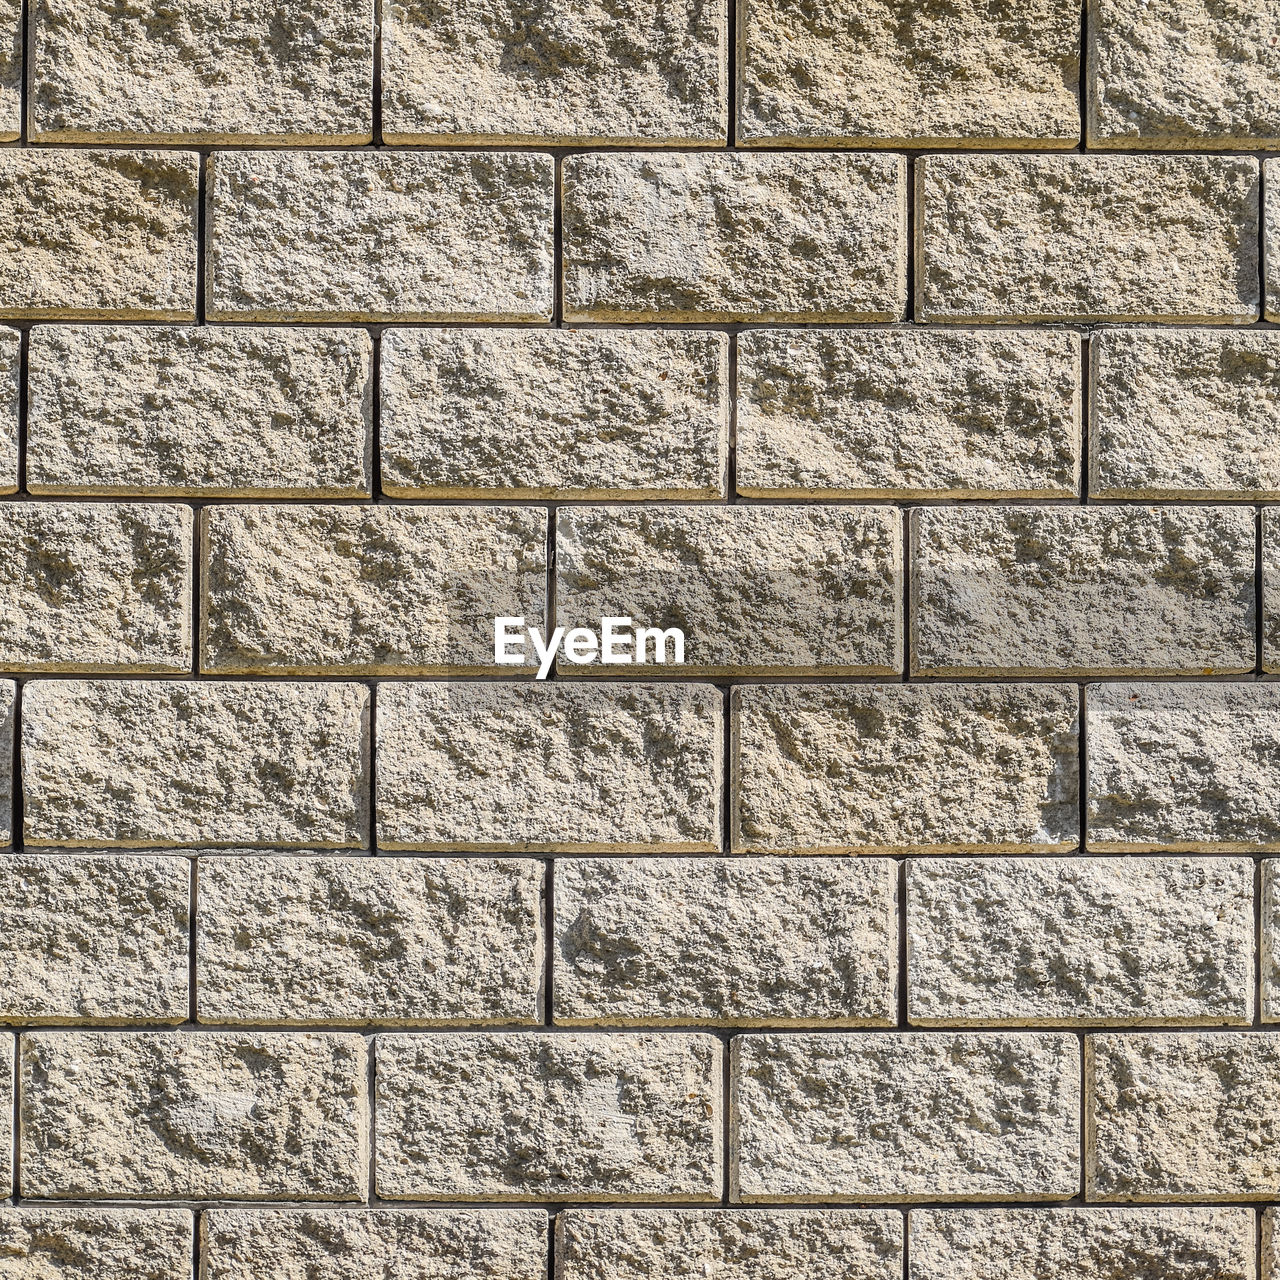 full frame, backgrounds, wall - building feature, pattern, textured, built structure, wall, architecture, no people, solid, brick, brick wall, stone material, rough, stone wall, day, repetition, rectangle, in a row, outdoors, concrete